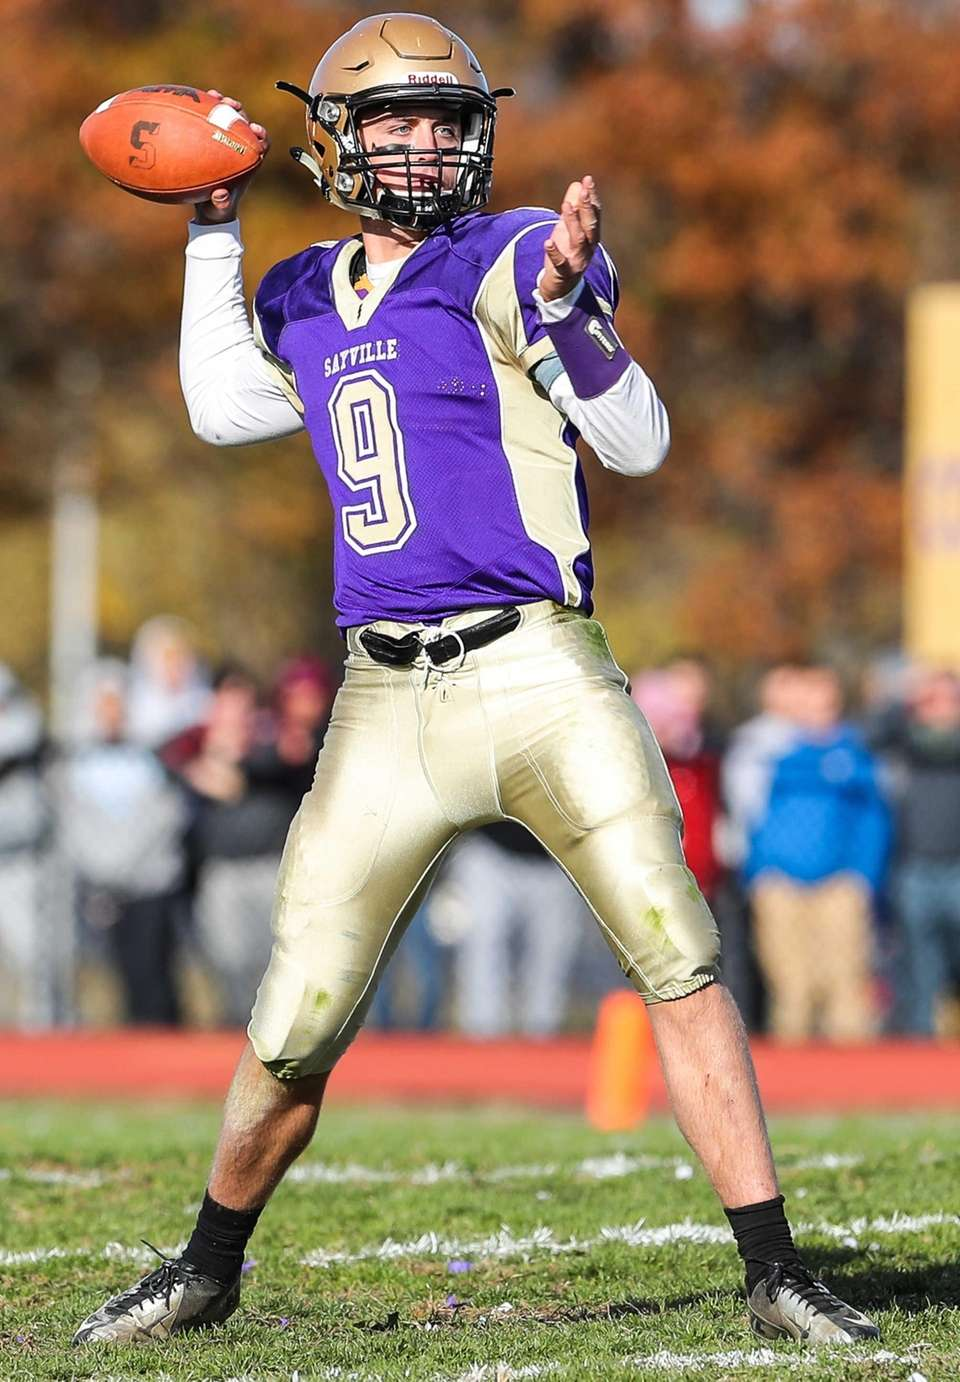 Sayville's Jack Coan passes in the Suffolk Division